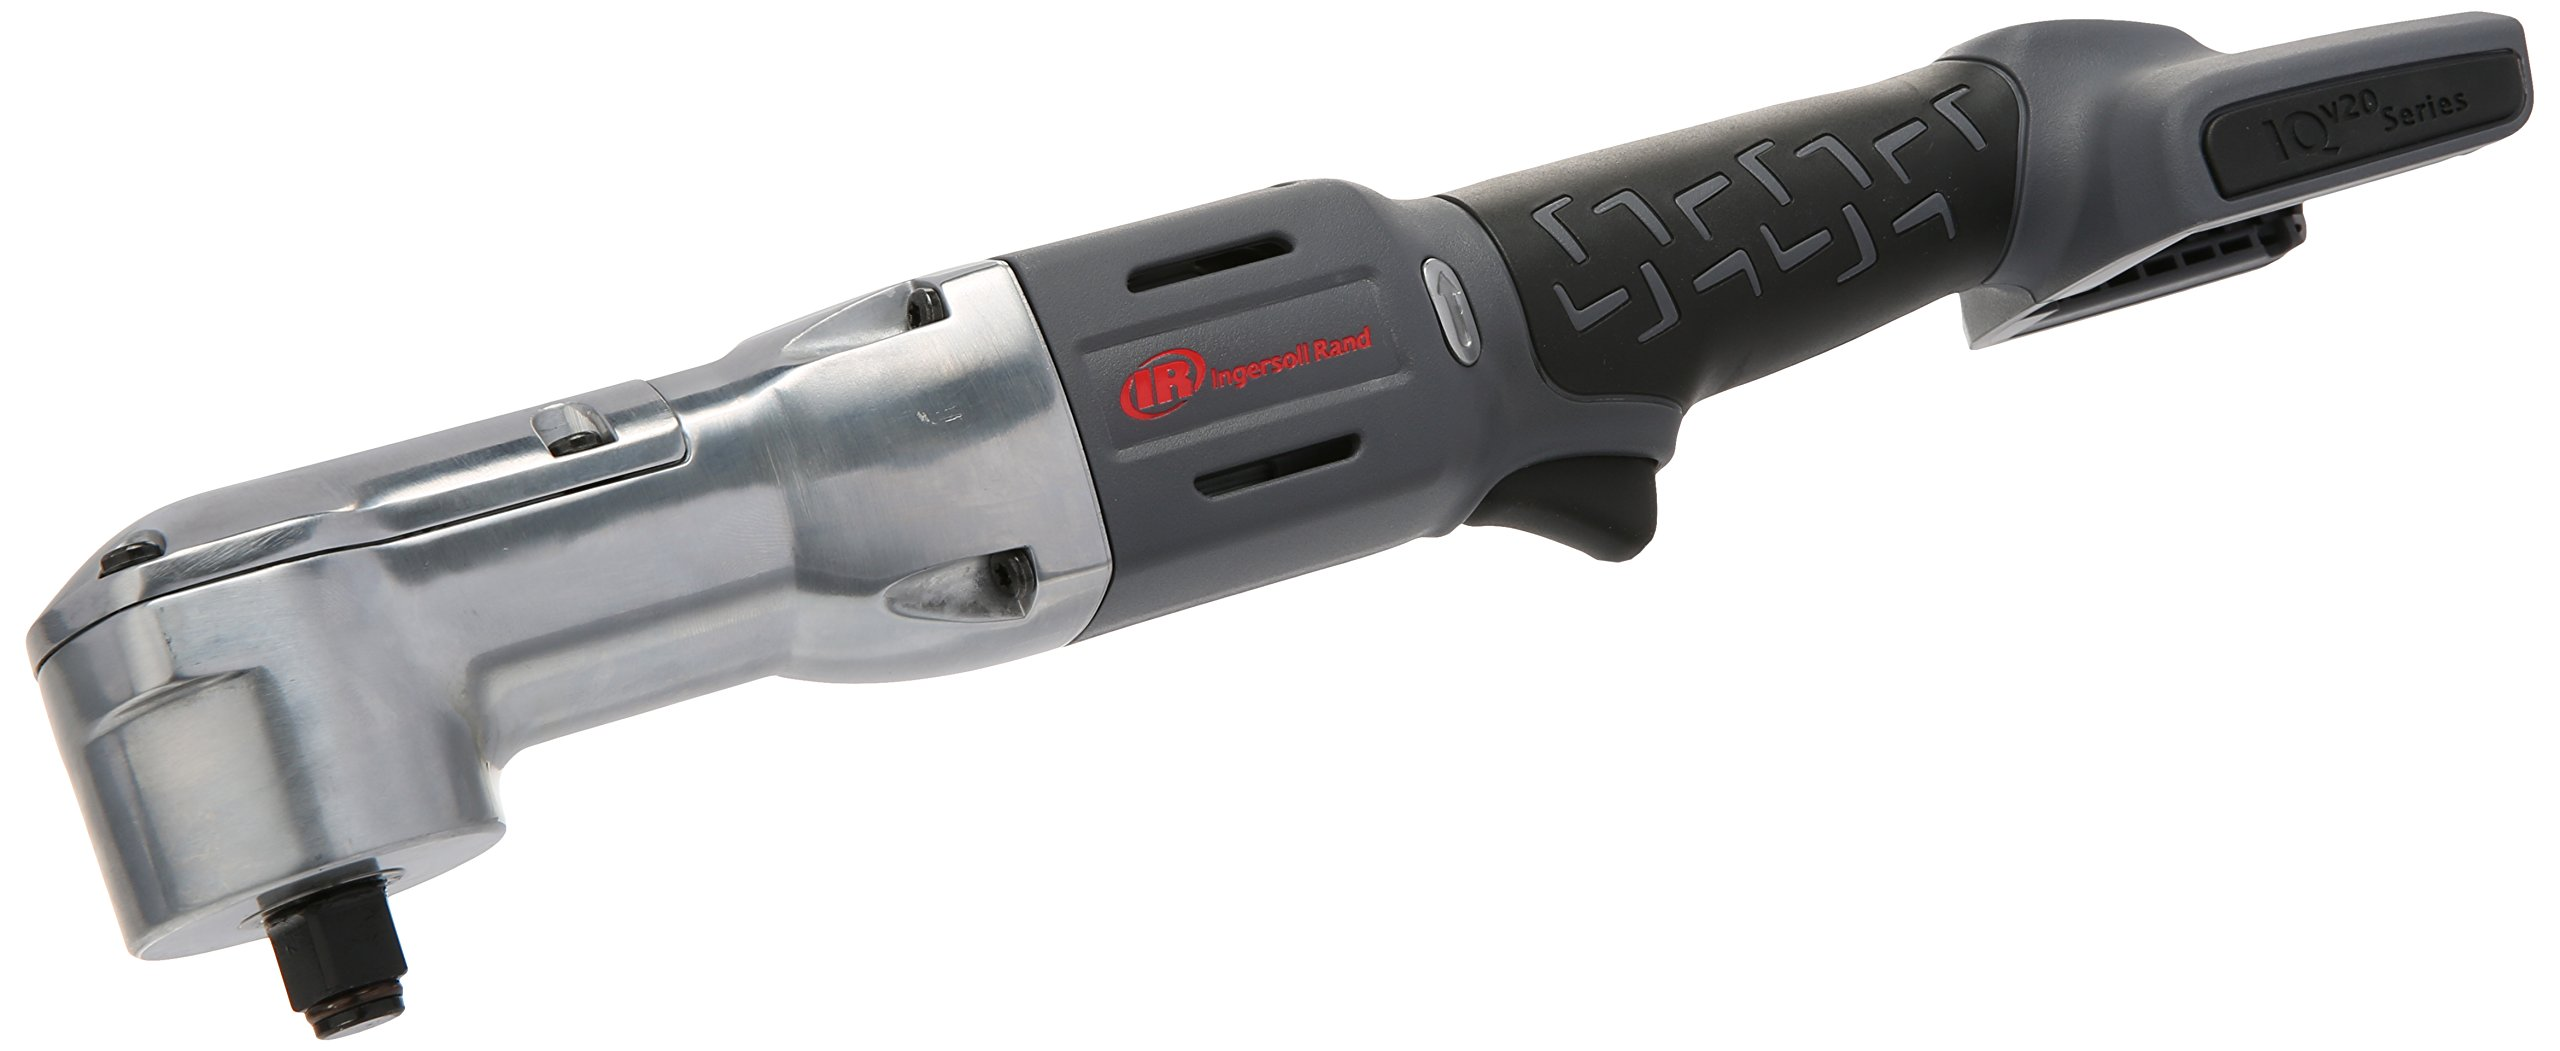 Ingersoll Rand W5350 20V 1/2'' Cordless Angle Impactool